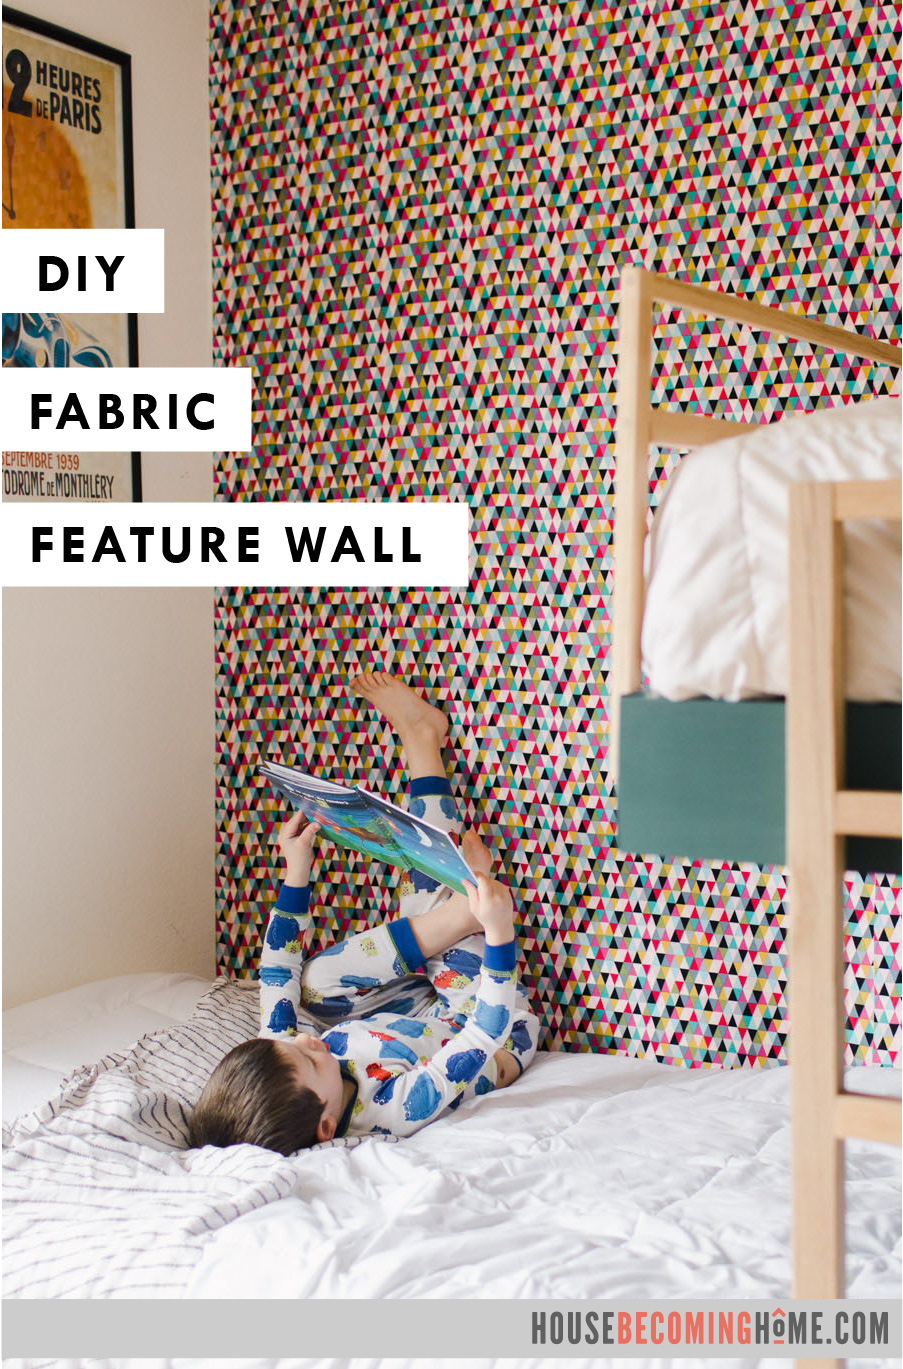 Temporary Wall Covering with Fabric